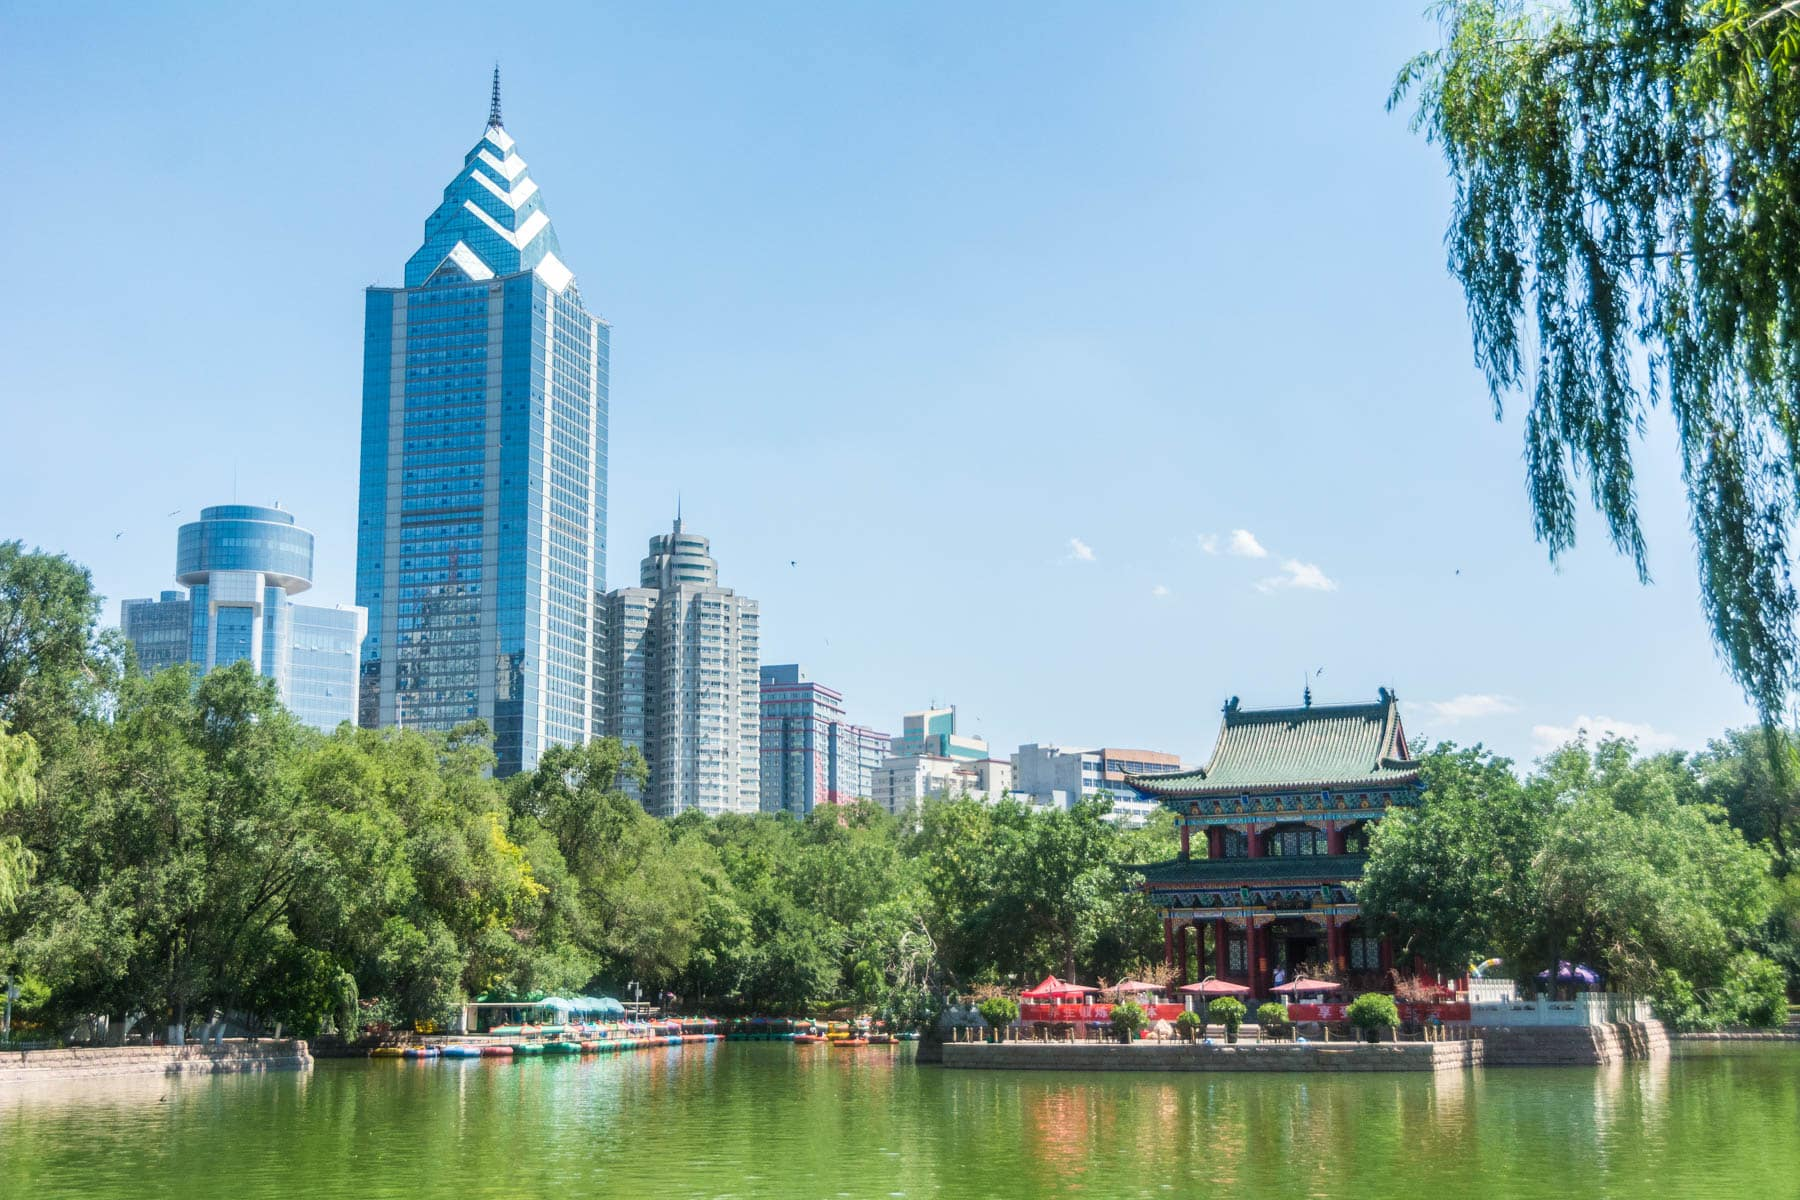 Pond in a park in central Urumqi, capital of Xinjiang, China